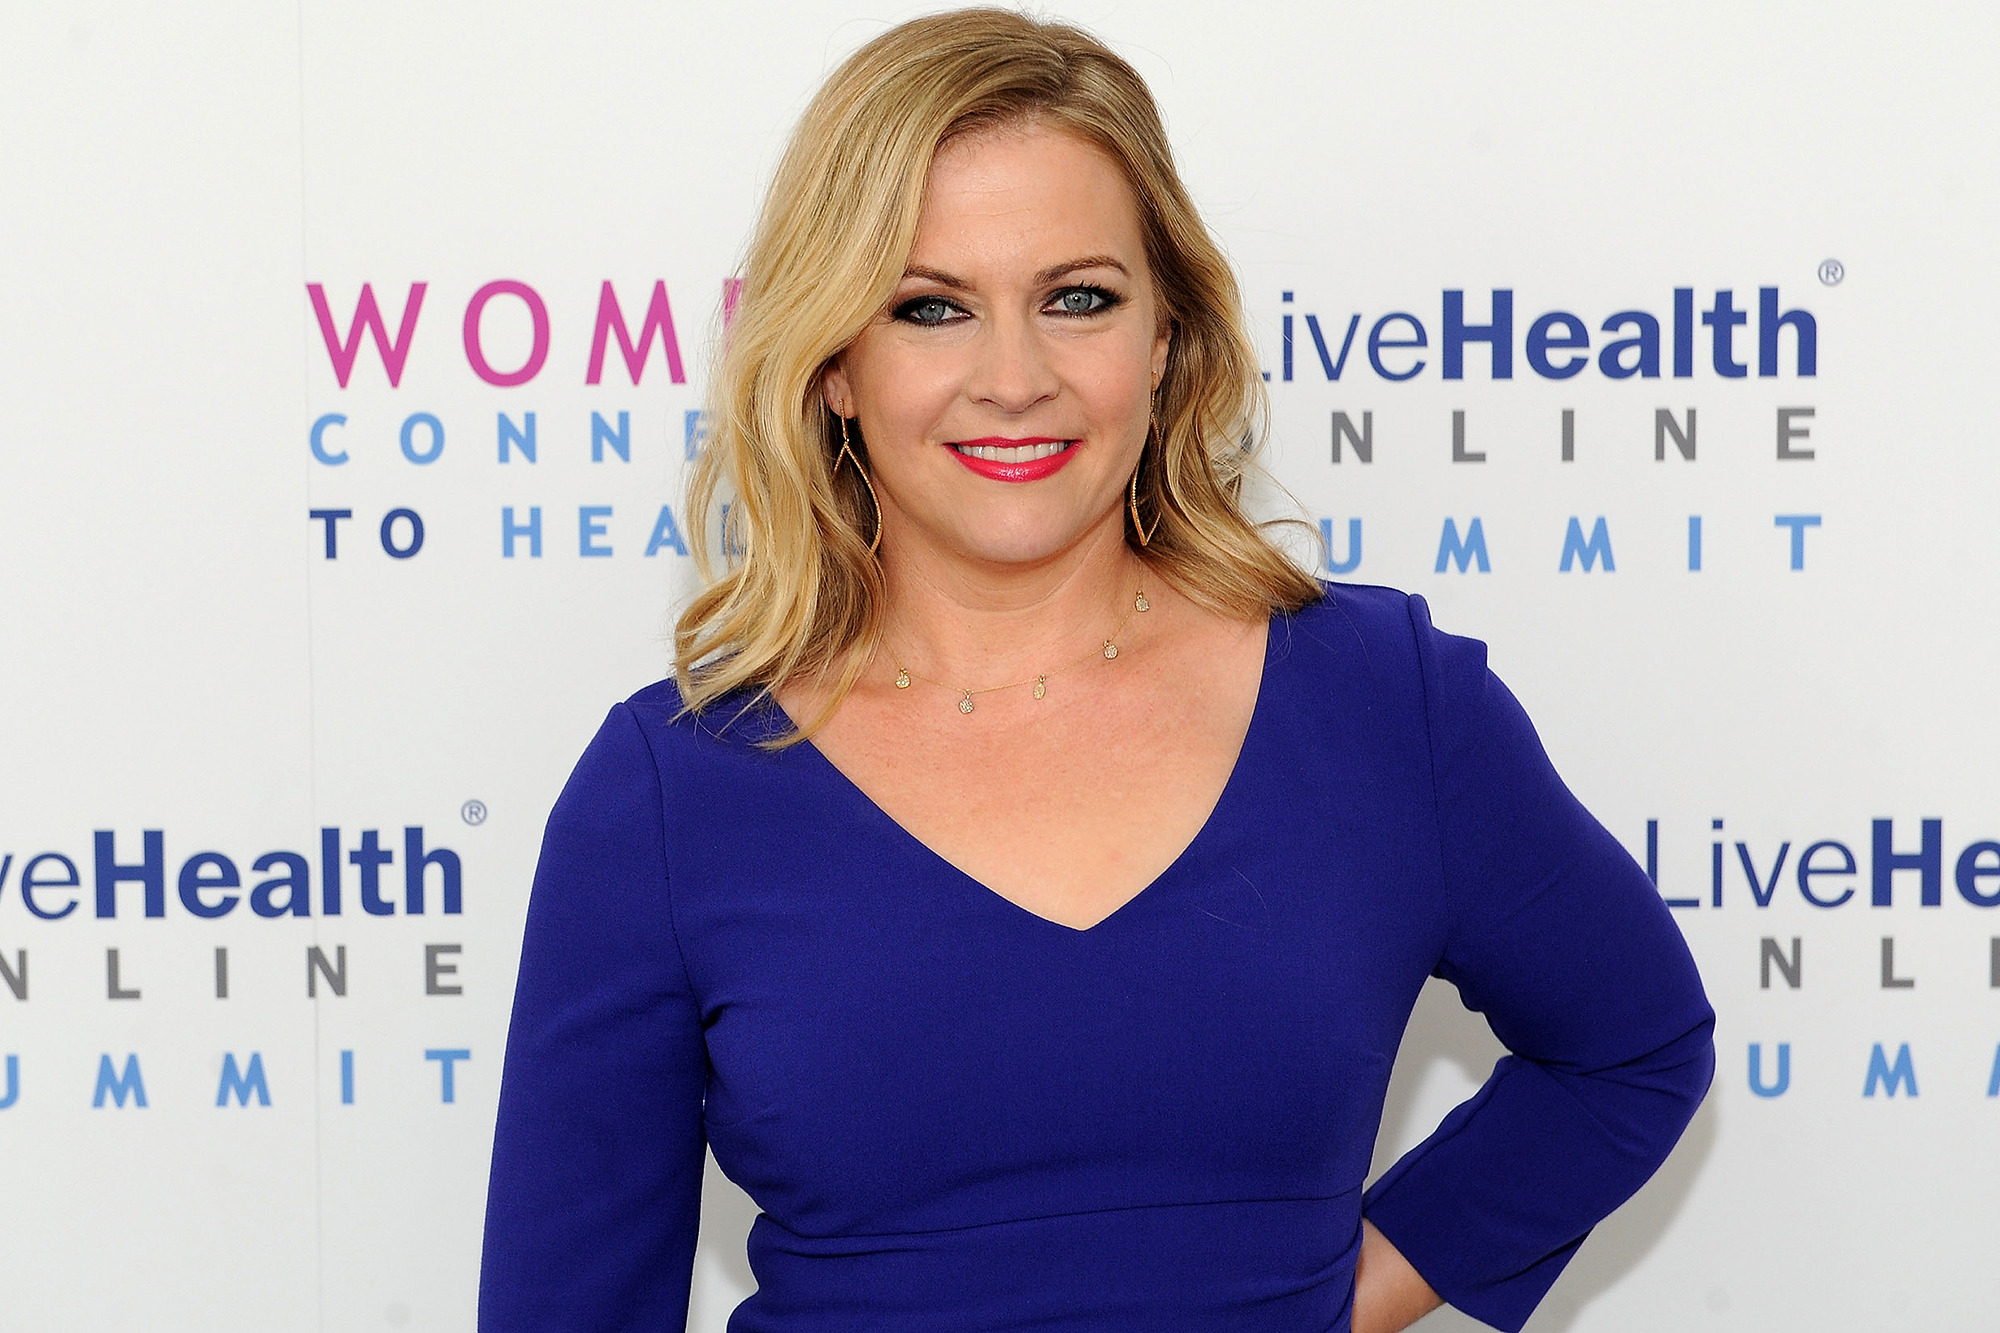 Melissa Joan Hart at the LiveHealth Online Summit: Women Connect to Health